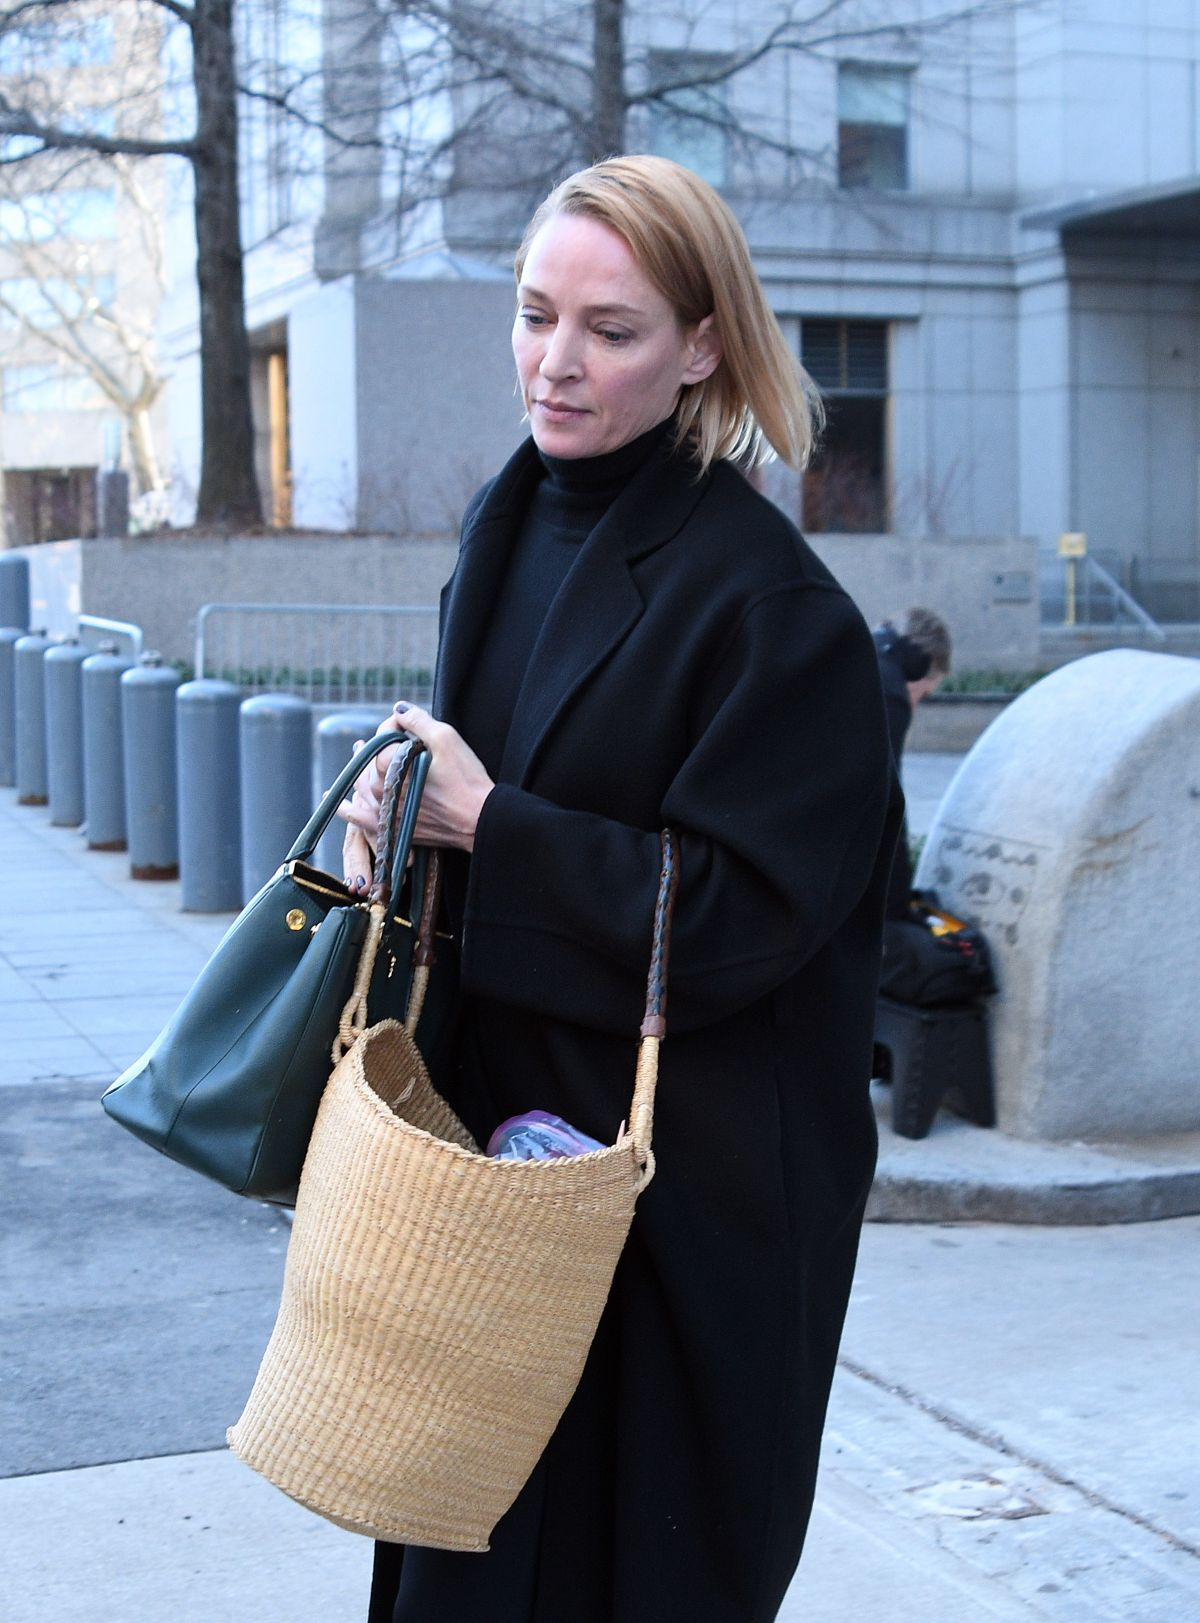 UMA THURMAN Out and About in New York 01/13/2017 ... Uma Thurman About